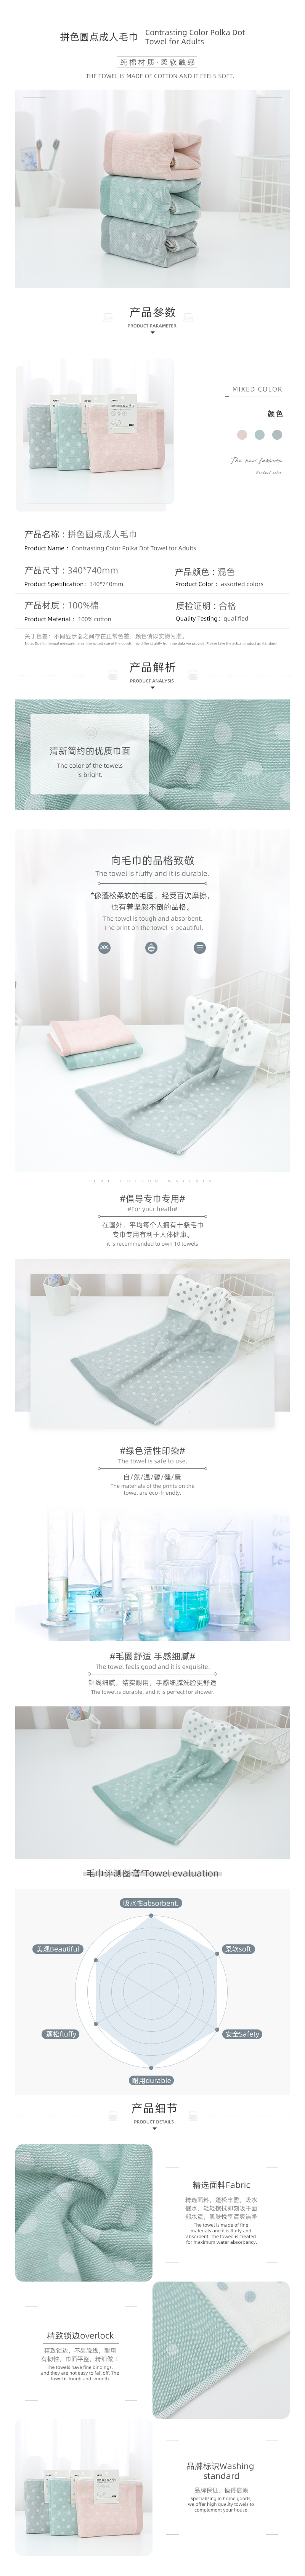 Contrasting Color Polka Dot Towel for Adults